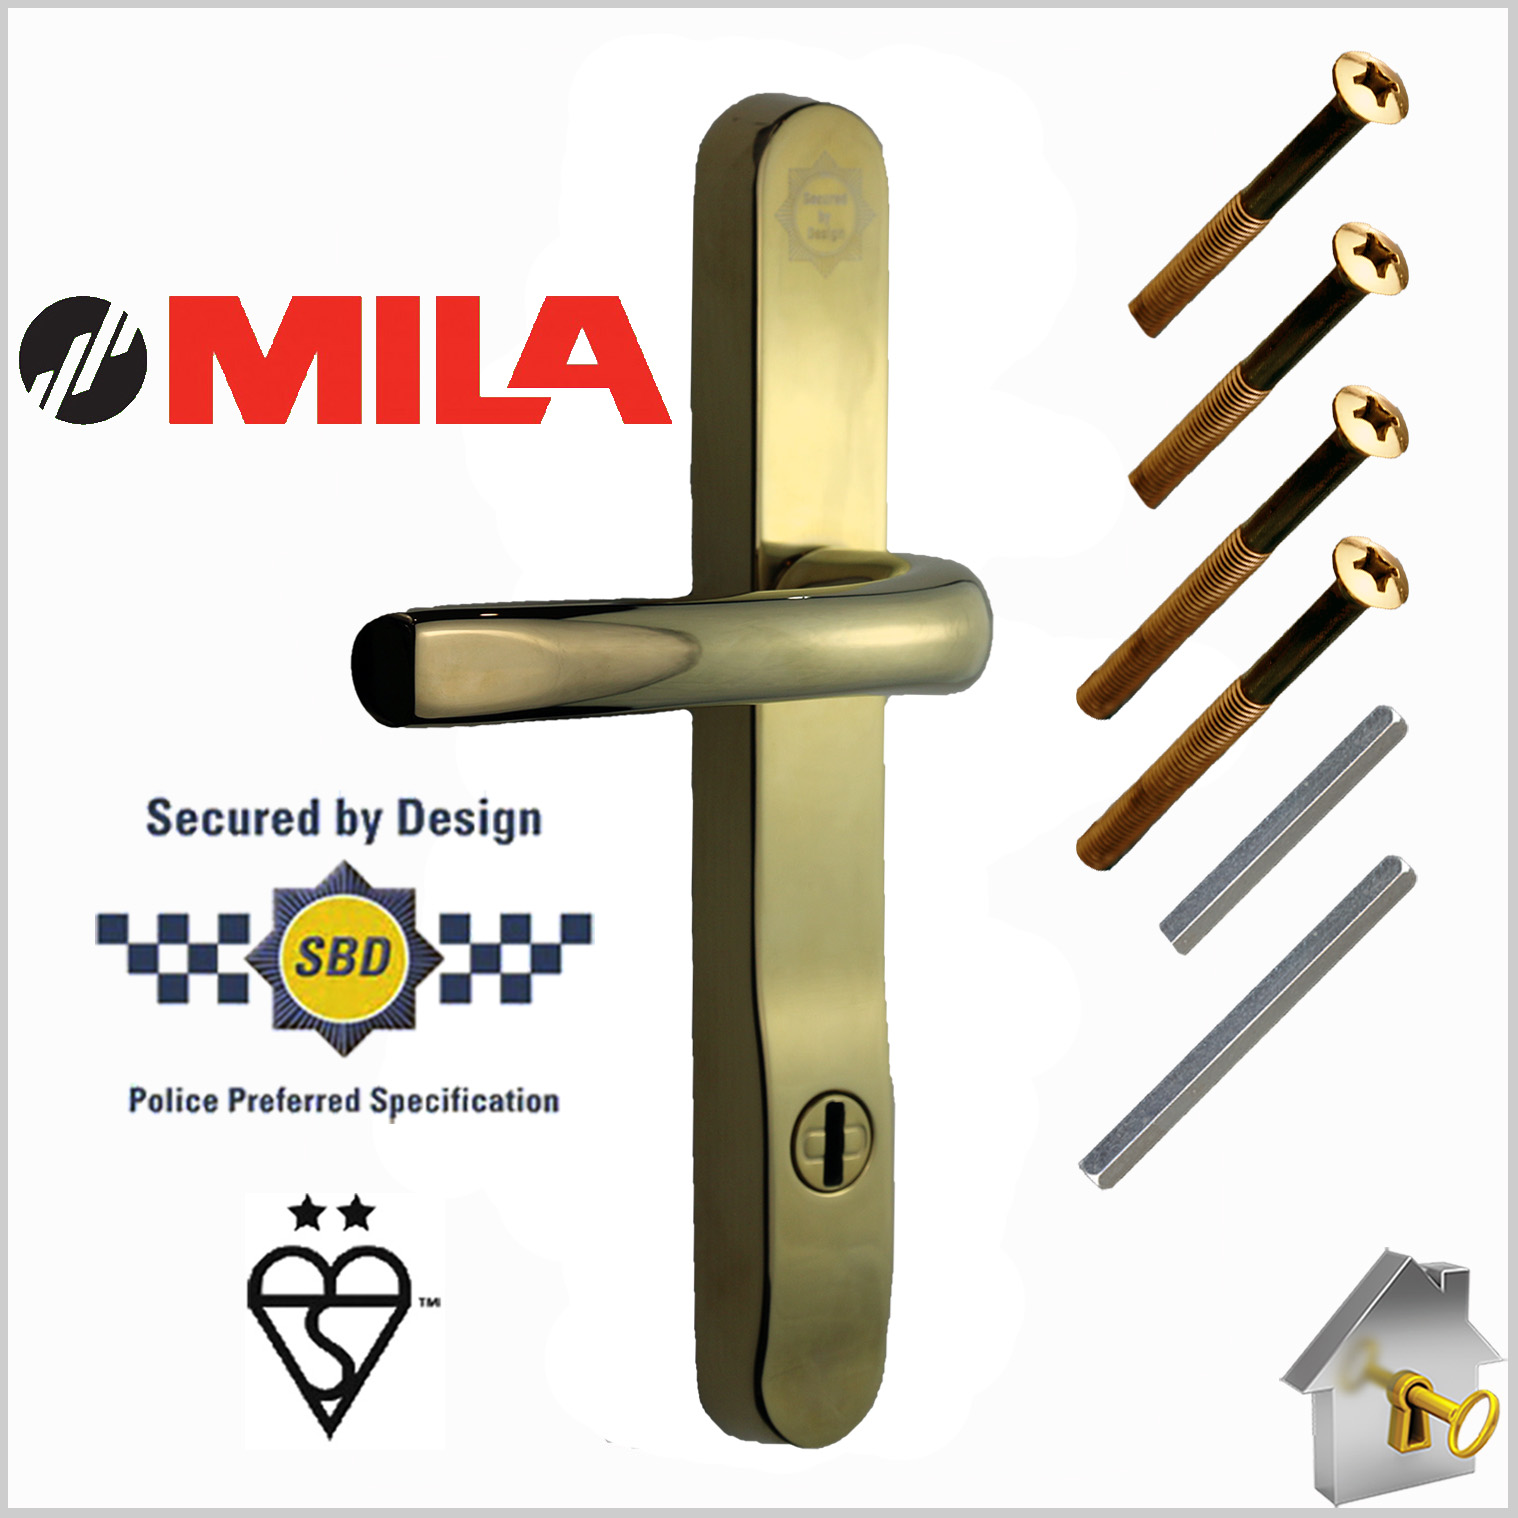 MILA Prosecure High Security Door Handles 240mm Backplate – 2 Star ...